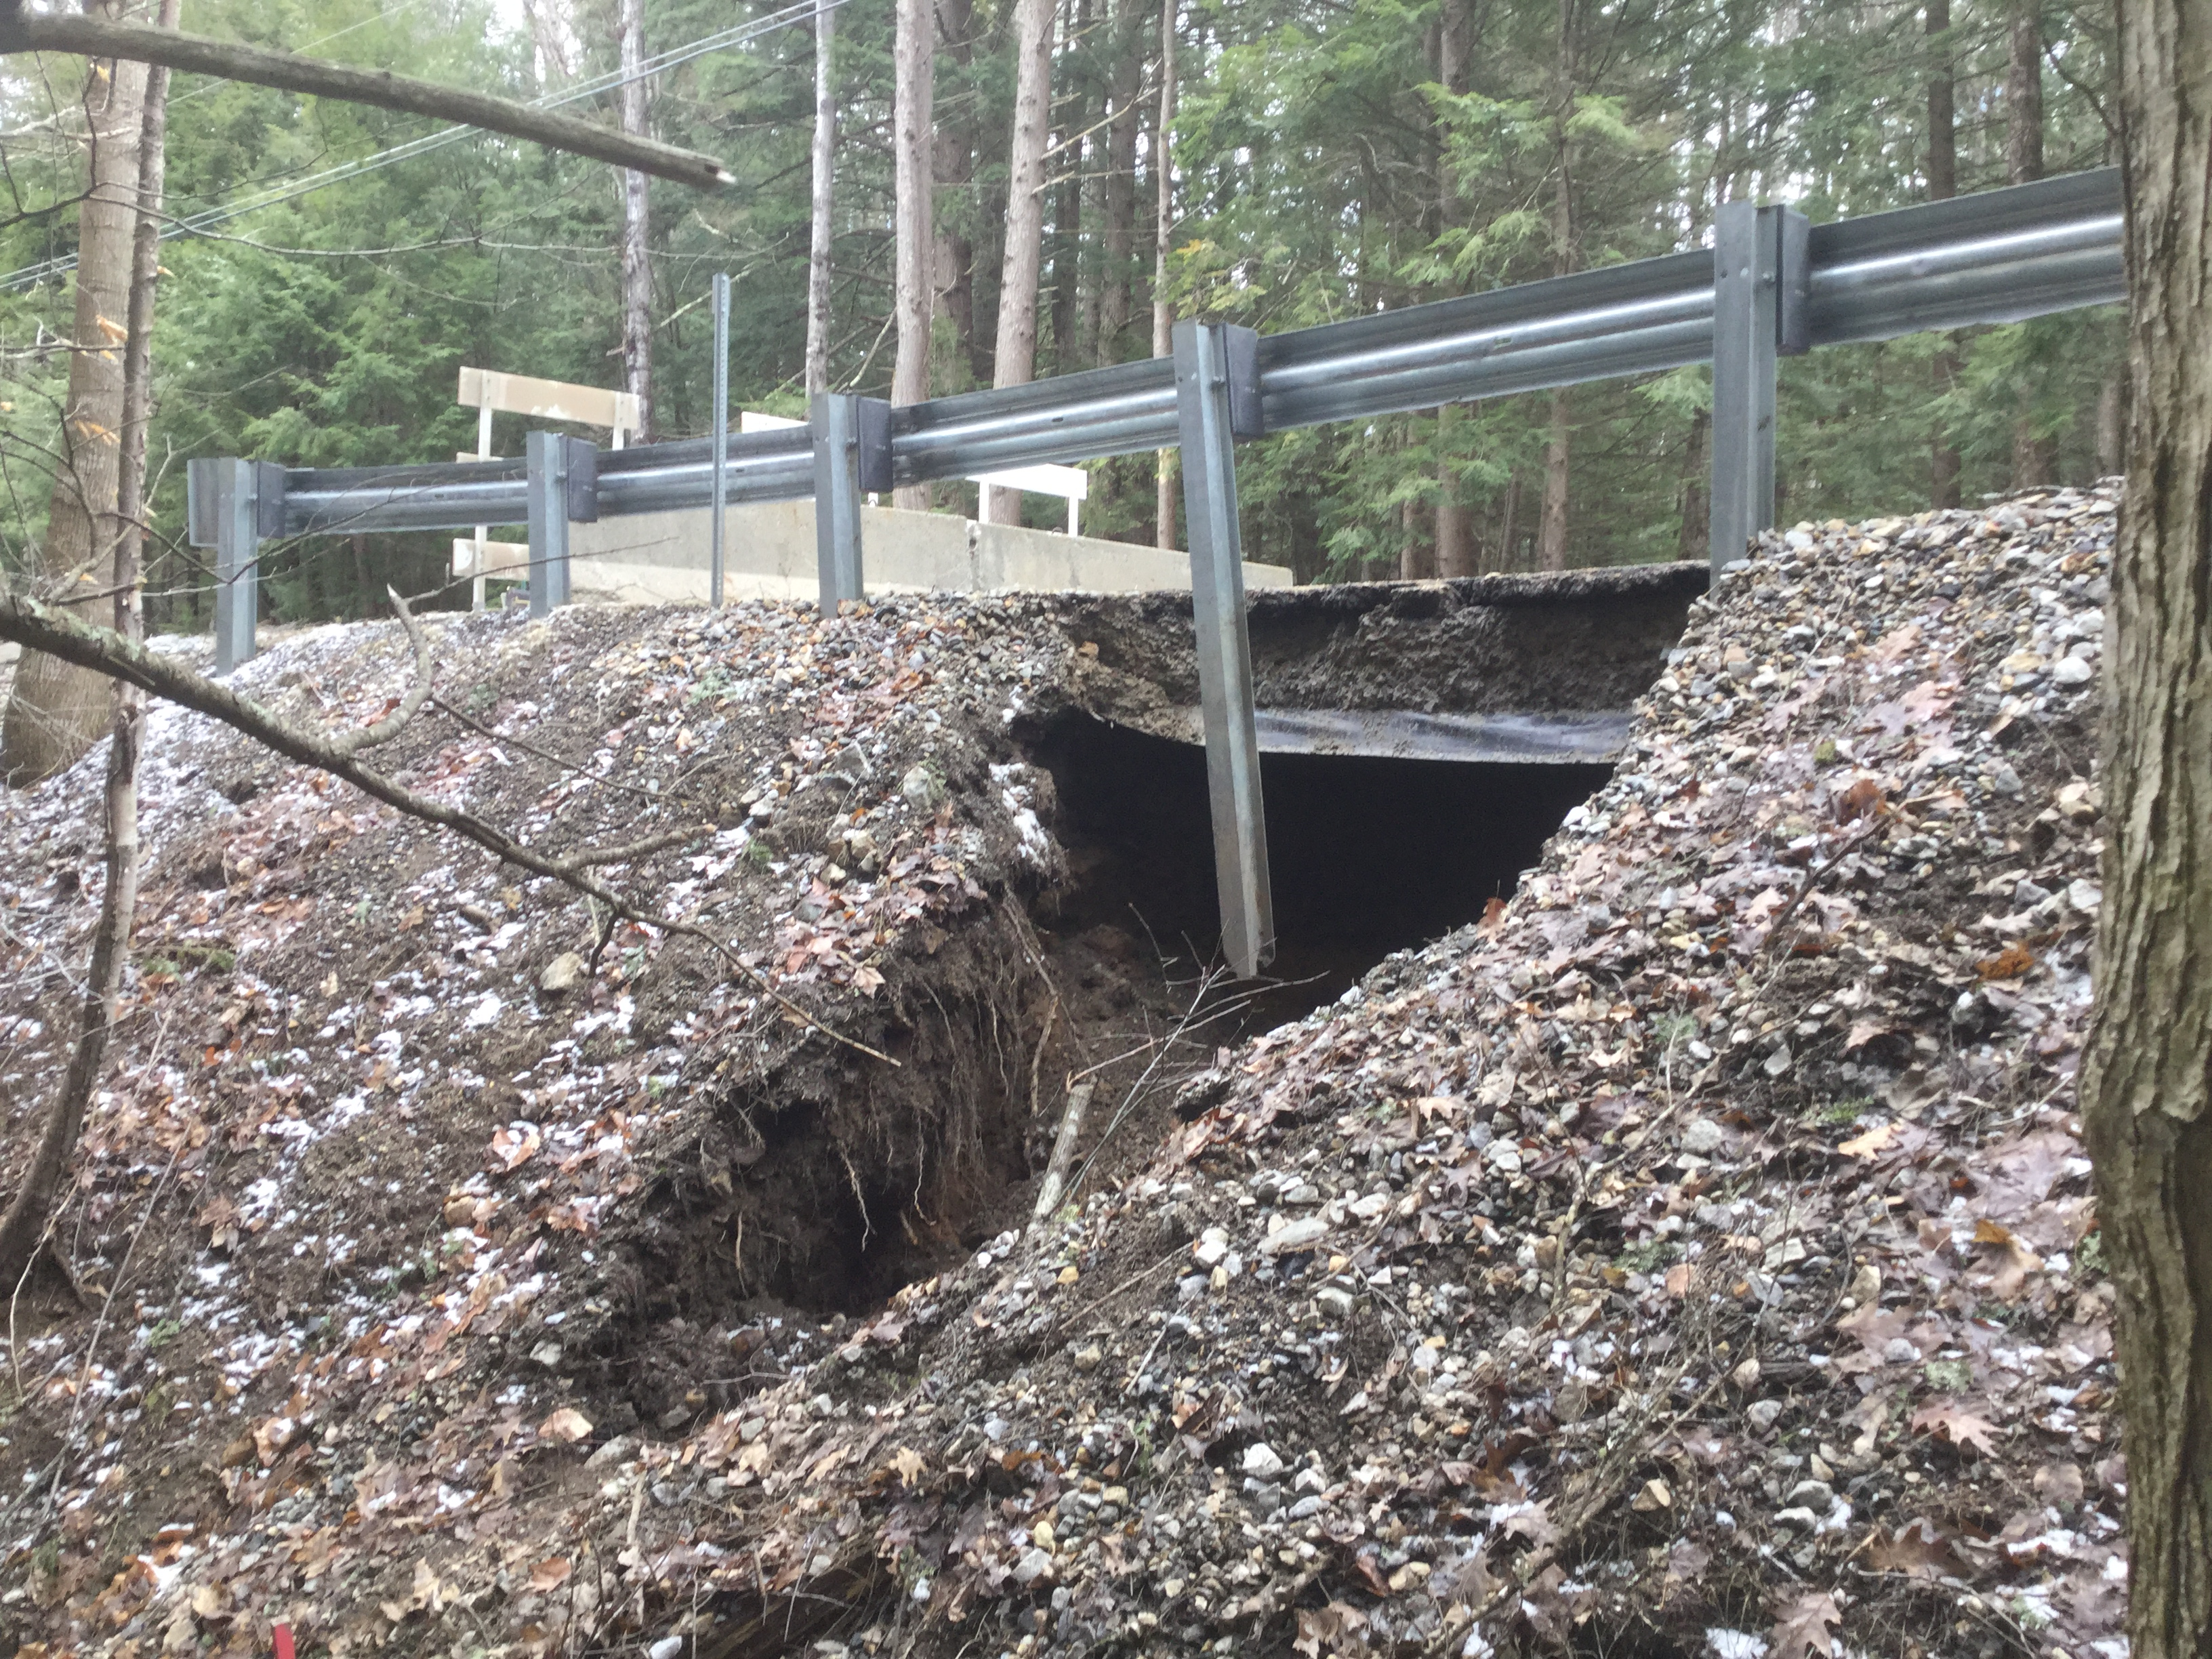 That's a culvert which needs replacing. Photo: City of Concord